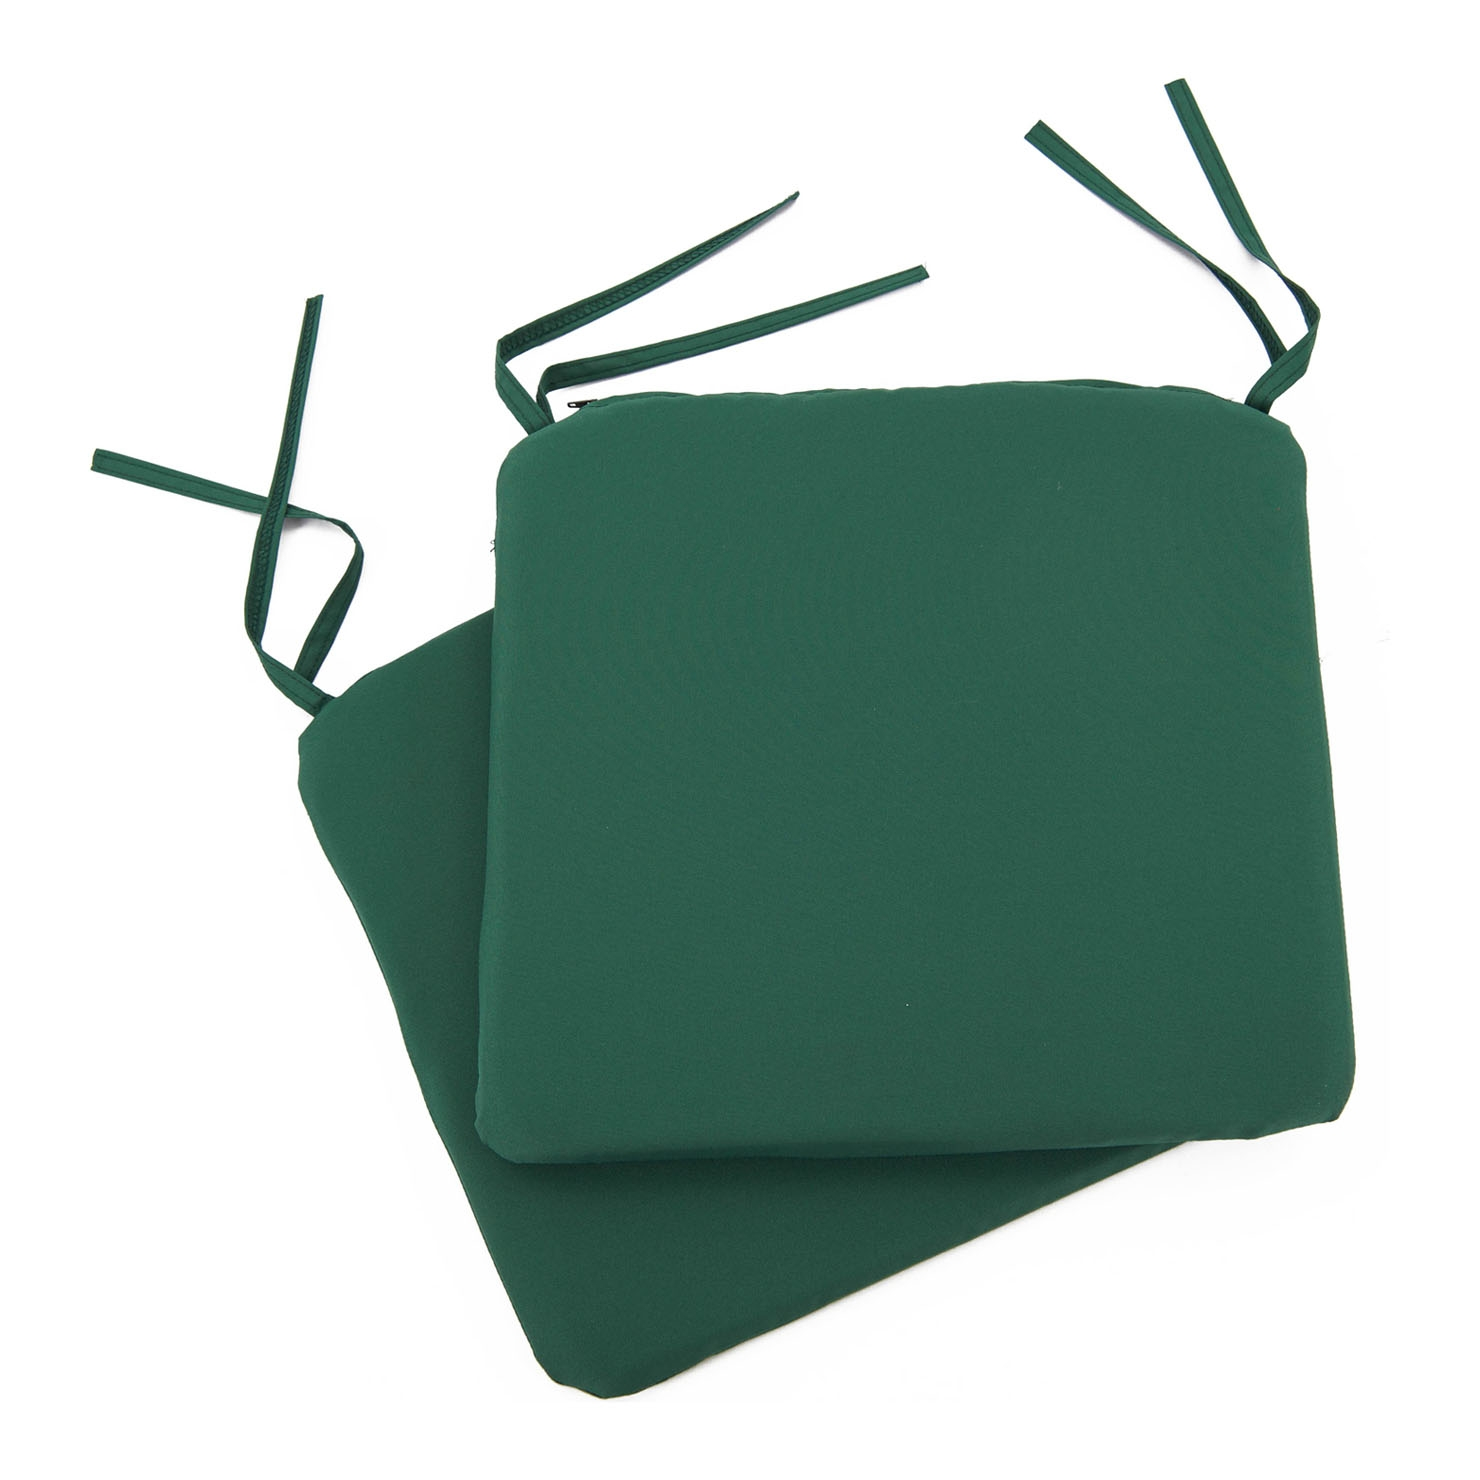 Image of Bistro Seat Pads (Green) Pack of 2